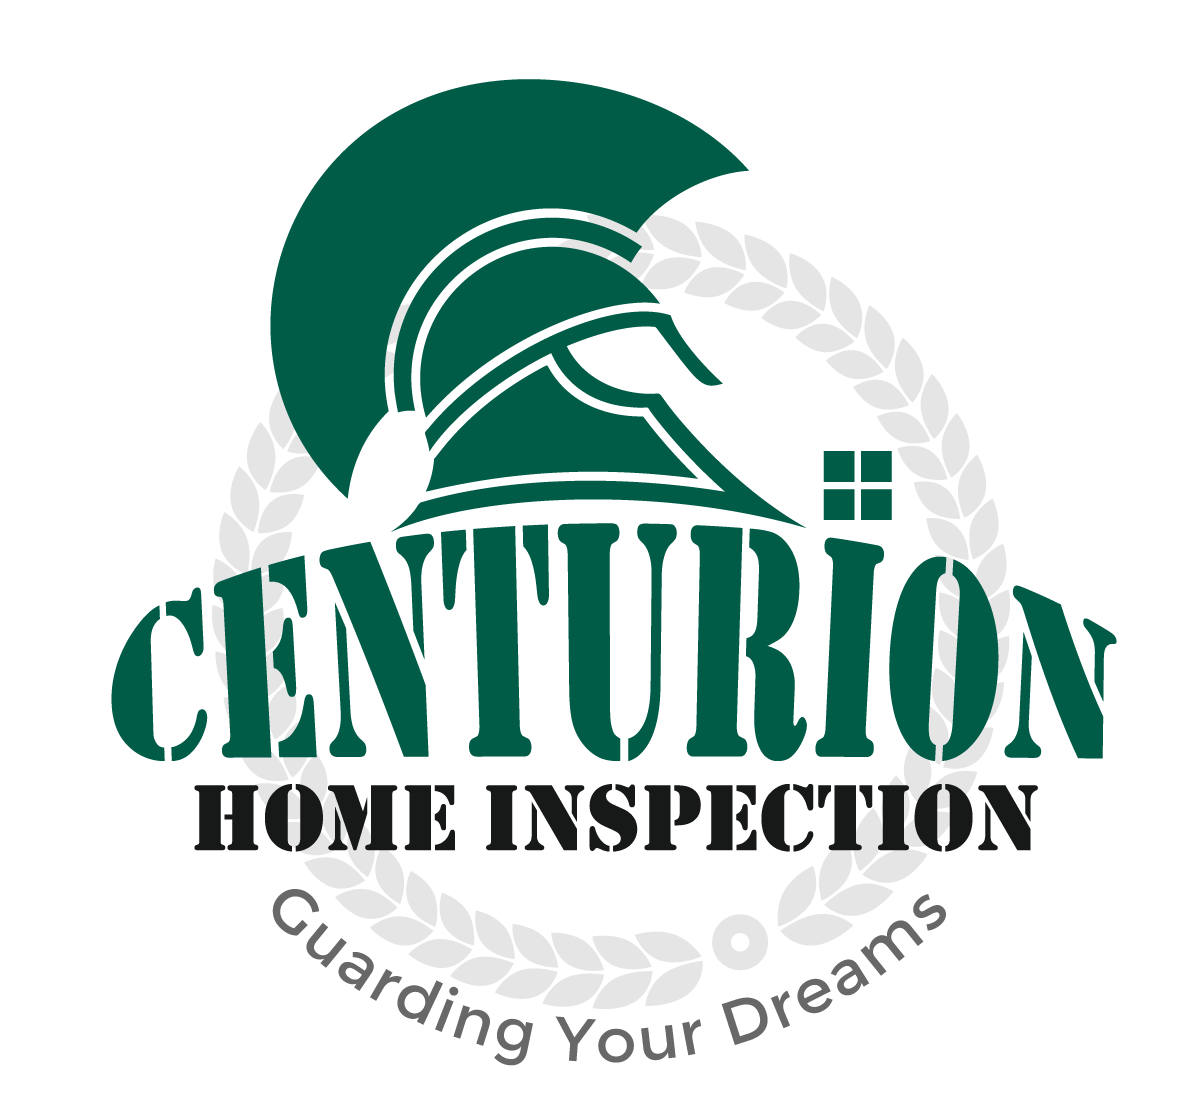 Centurion Home Inspections